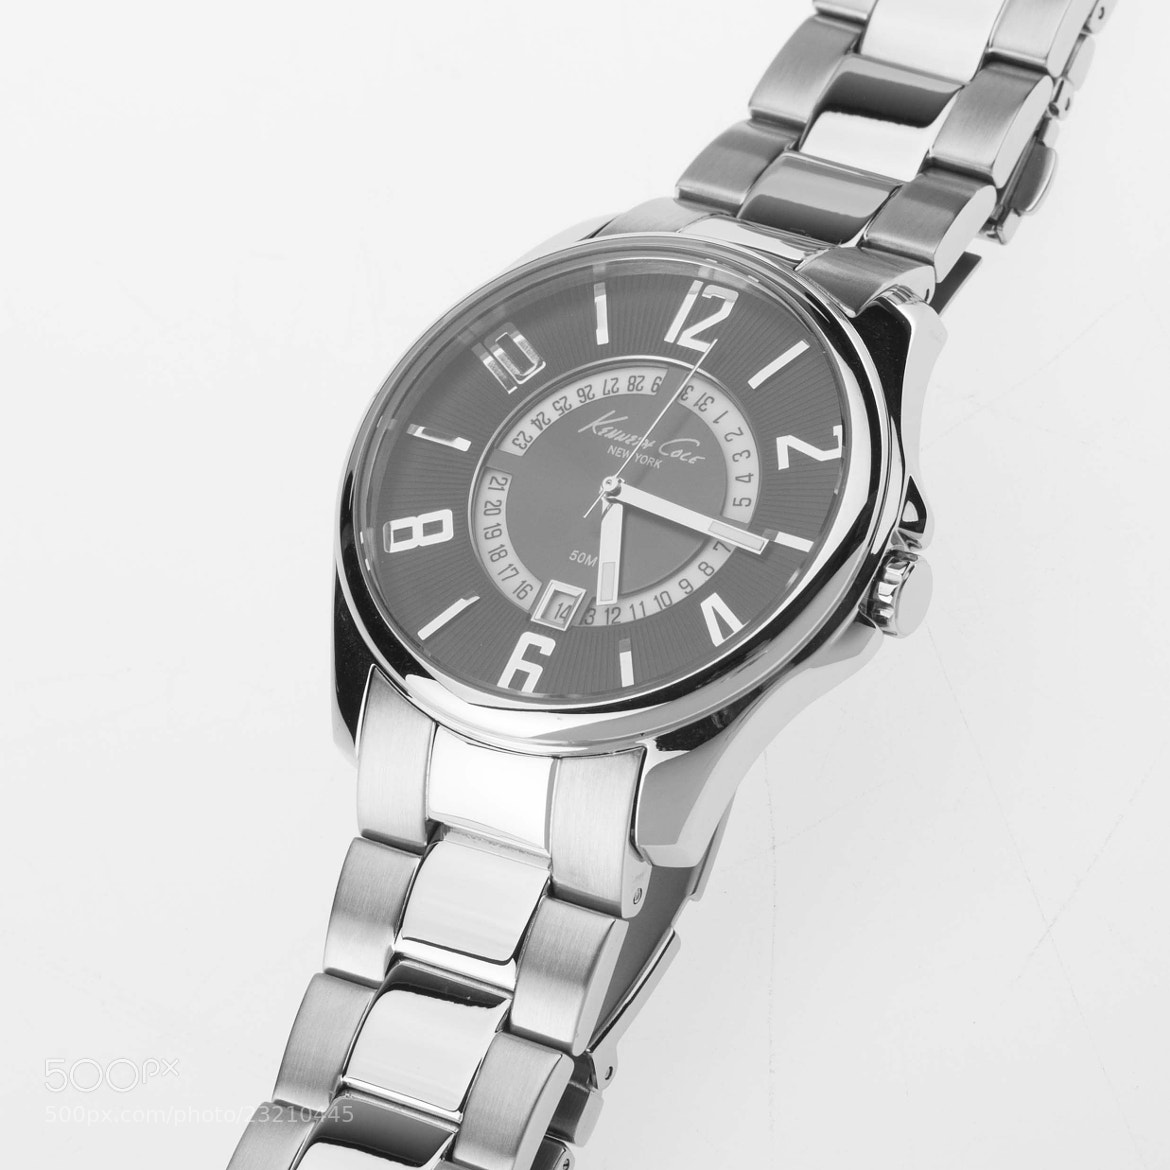 Photograph Steel Watch by mauThanh QUANG on 500px